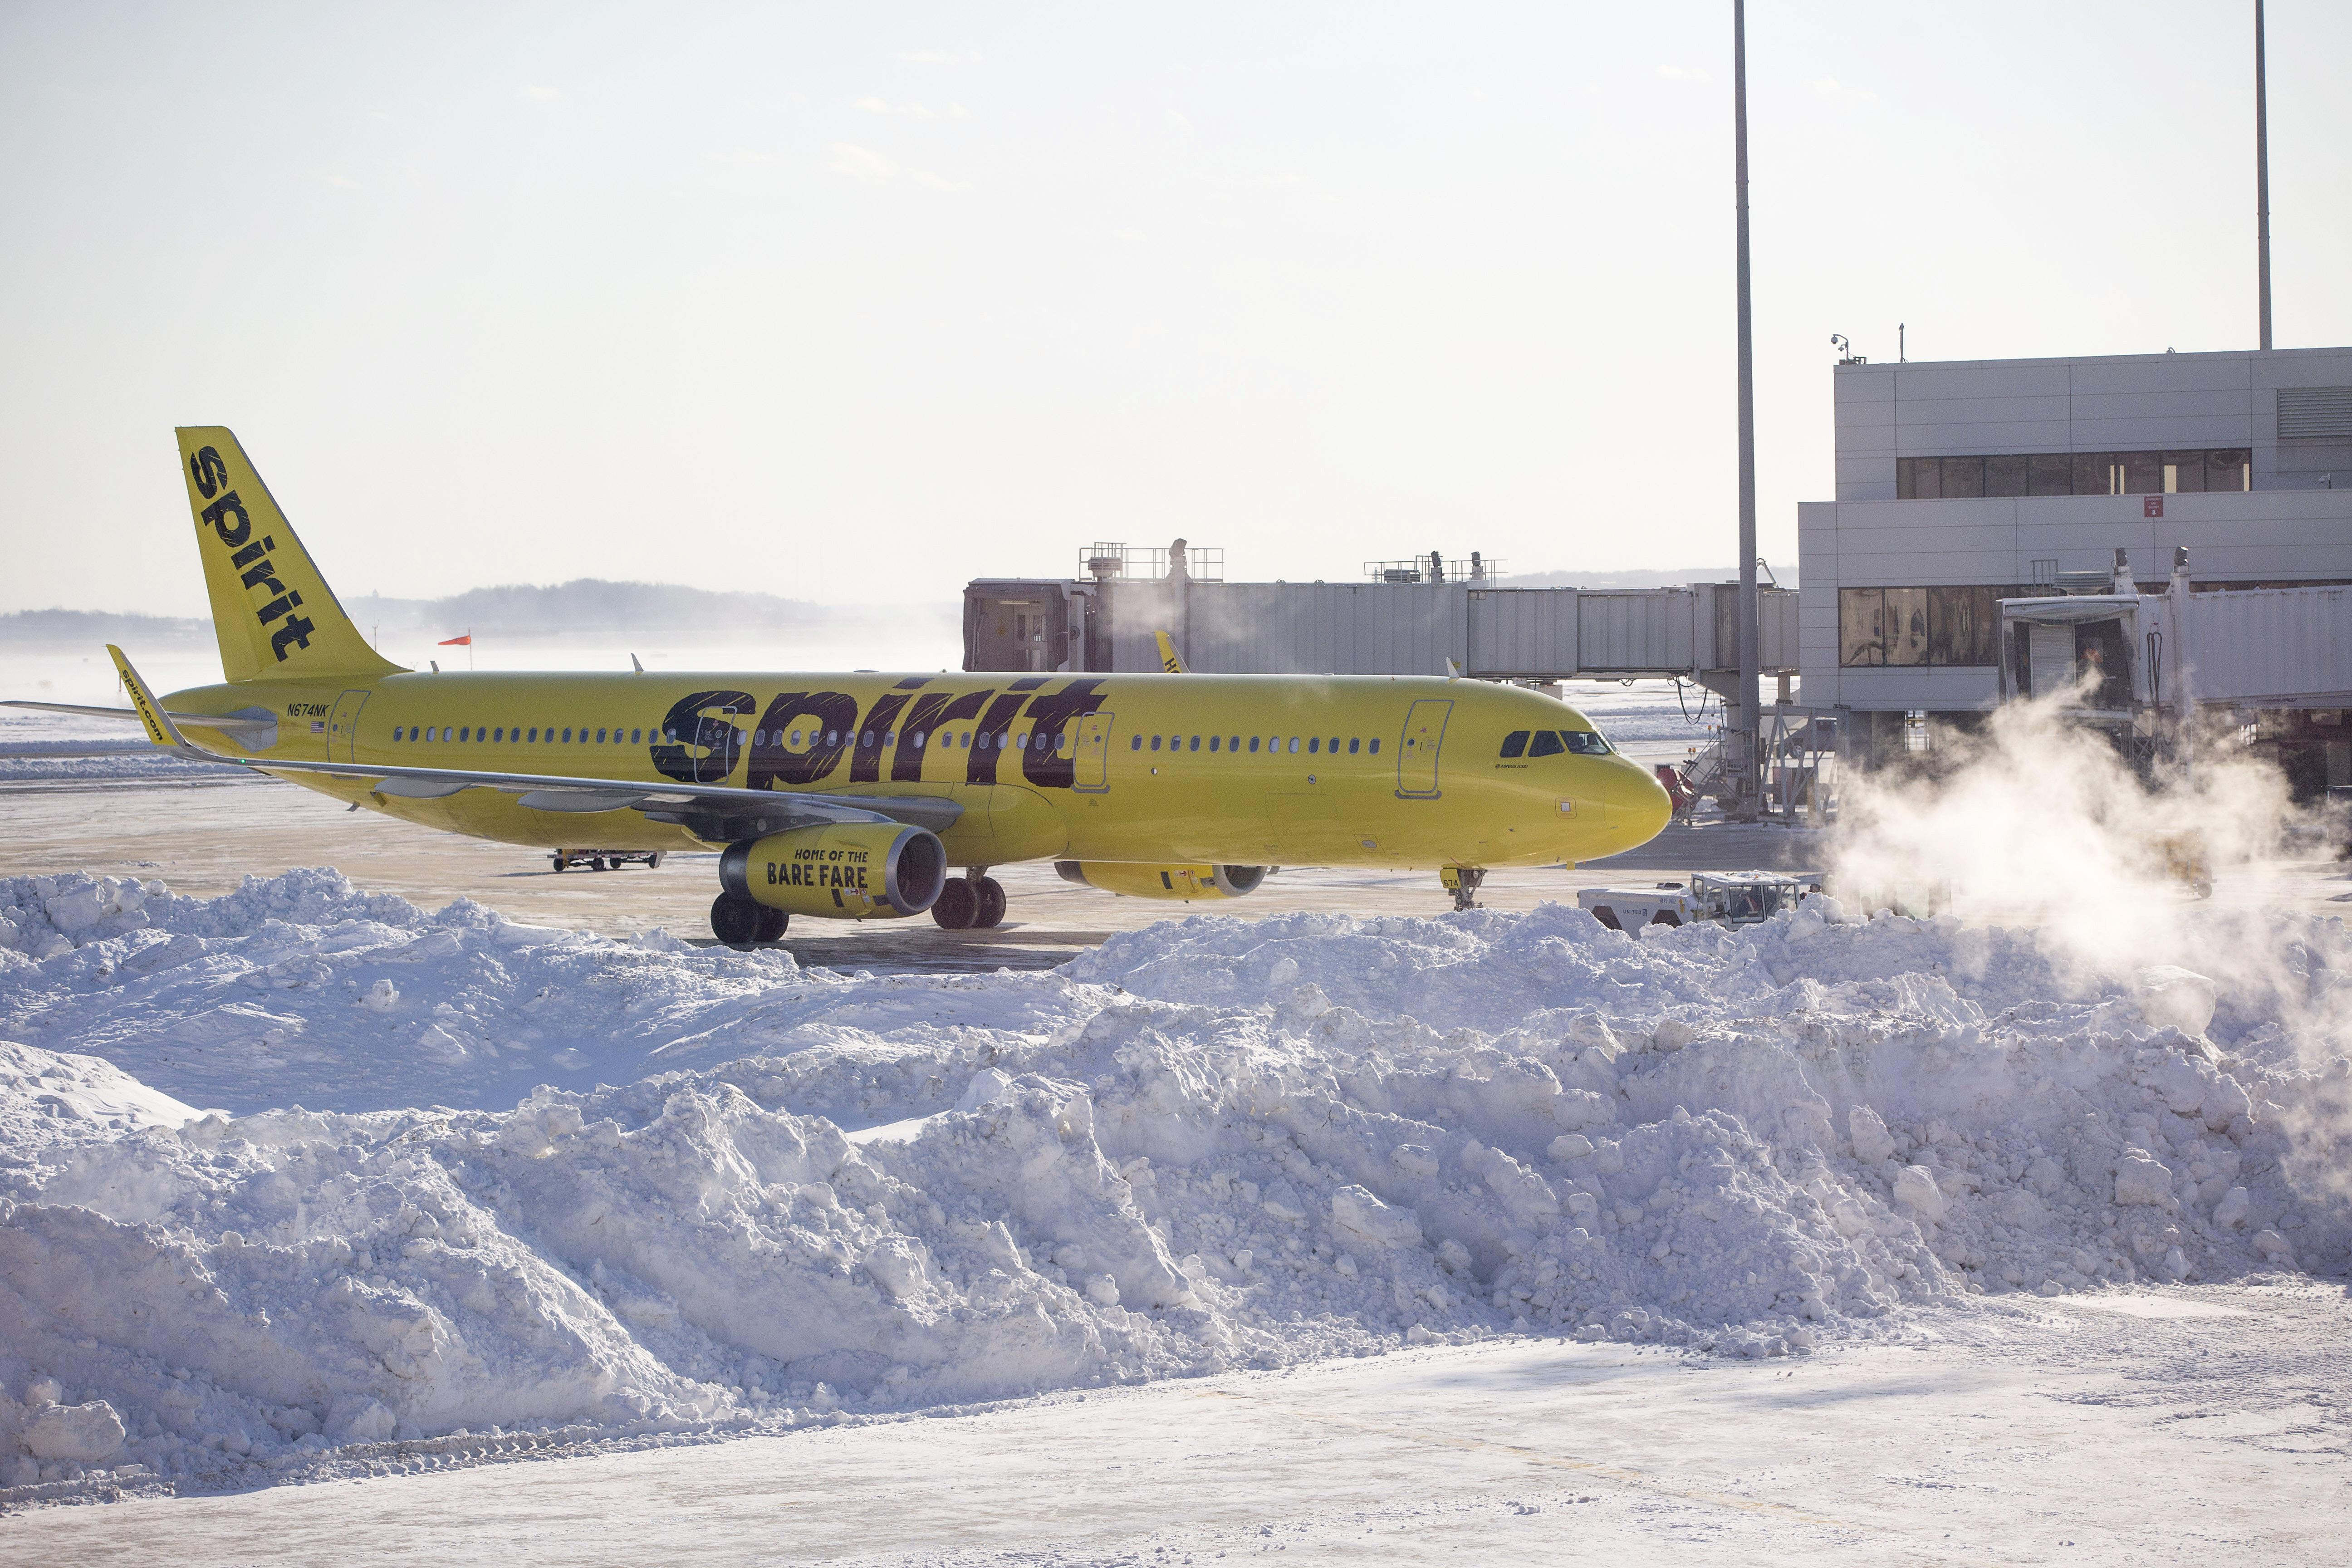 Spirit Airlines acknowledges that it misinformed the passenger, but denies telling her to harm the hamster.